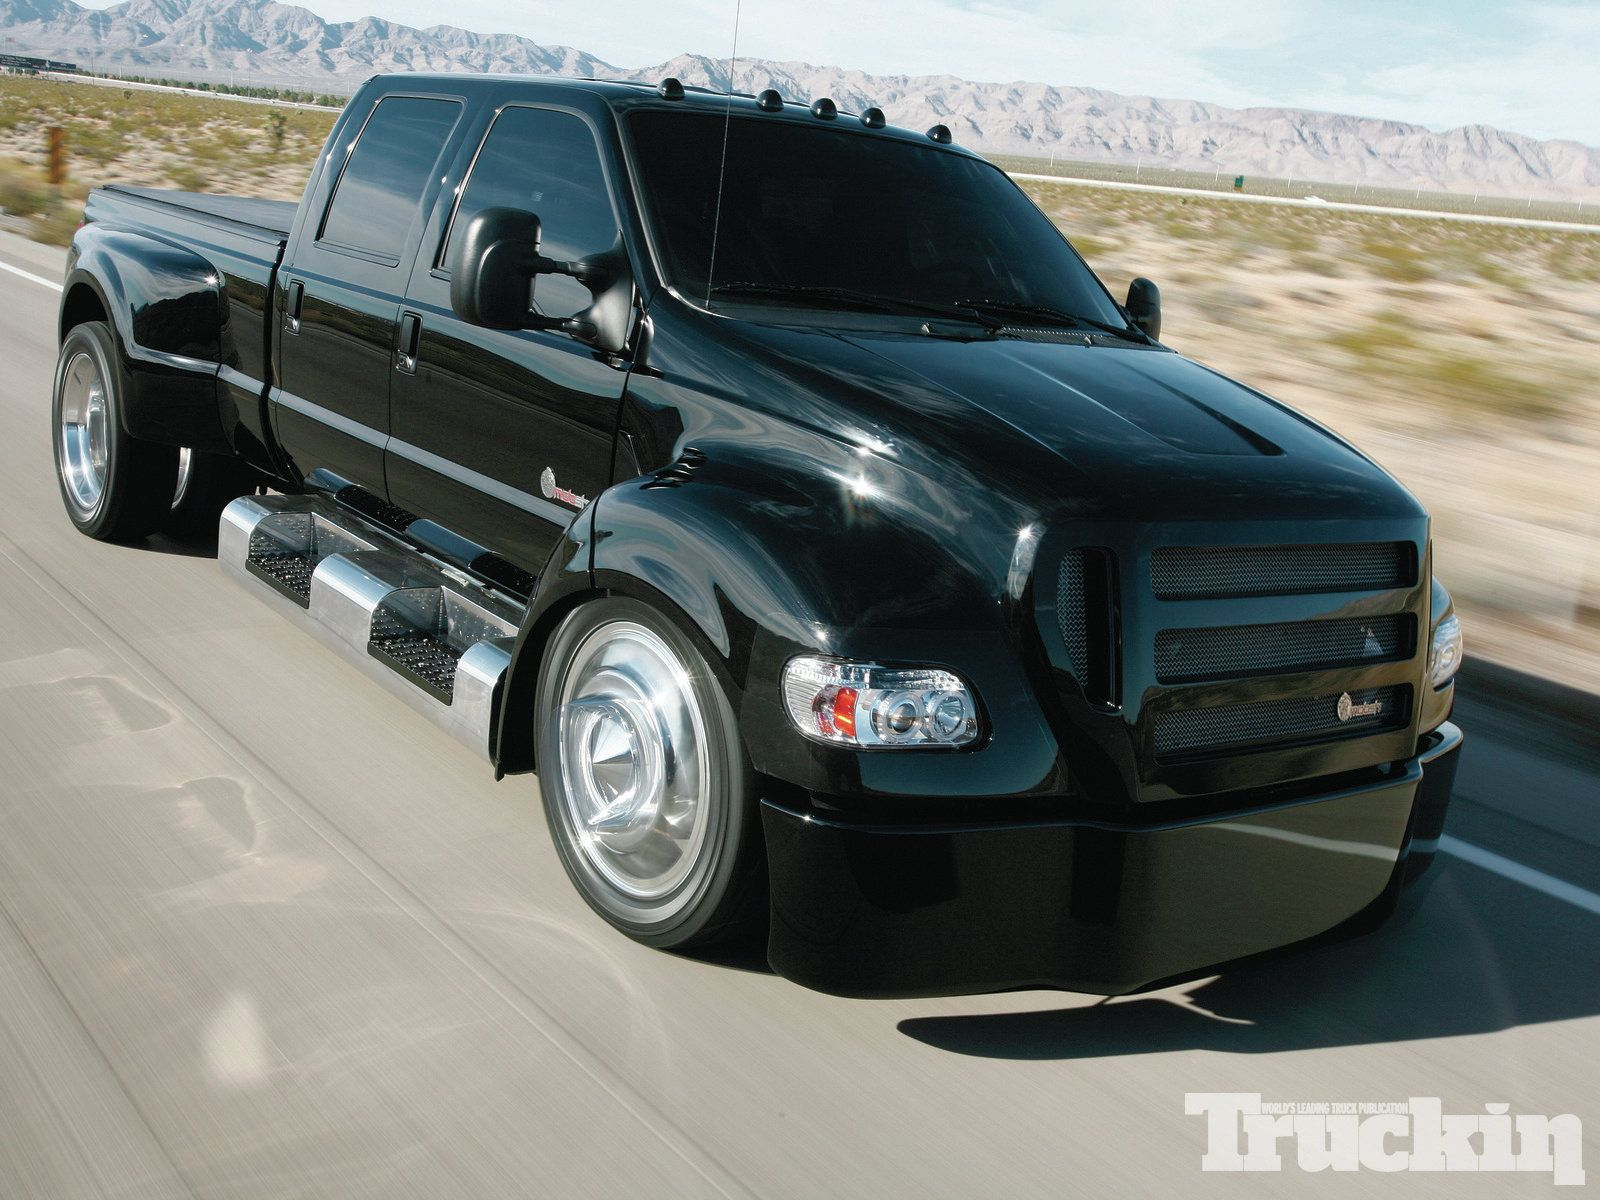 Ford F650  Trucks  Pinterest  Ford f650 and Ford